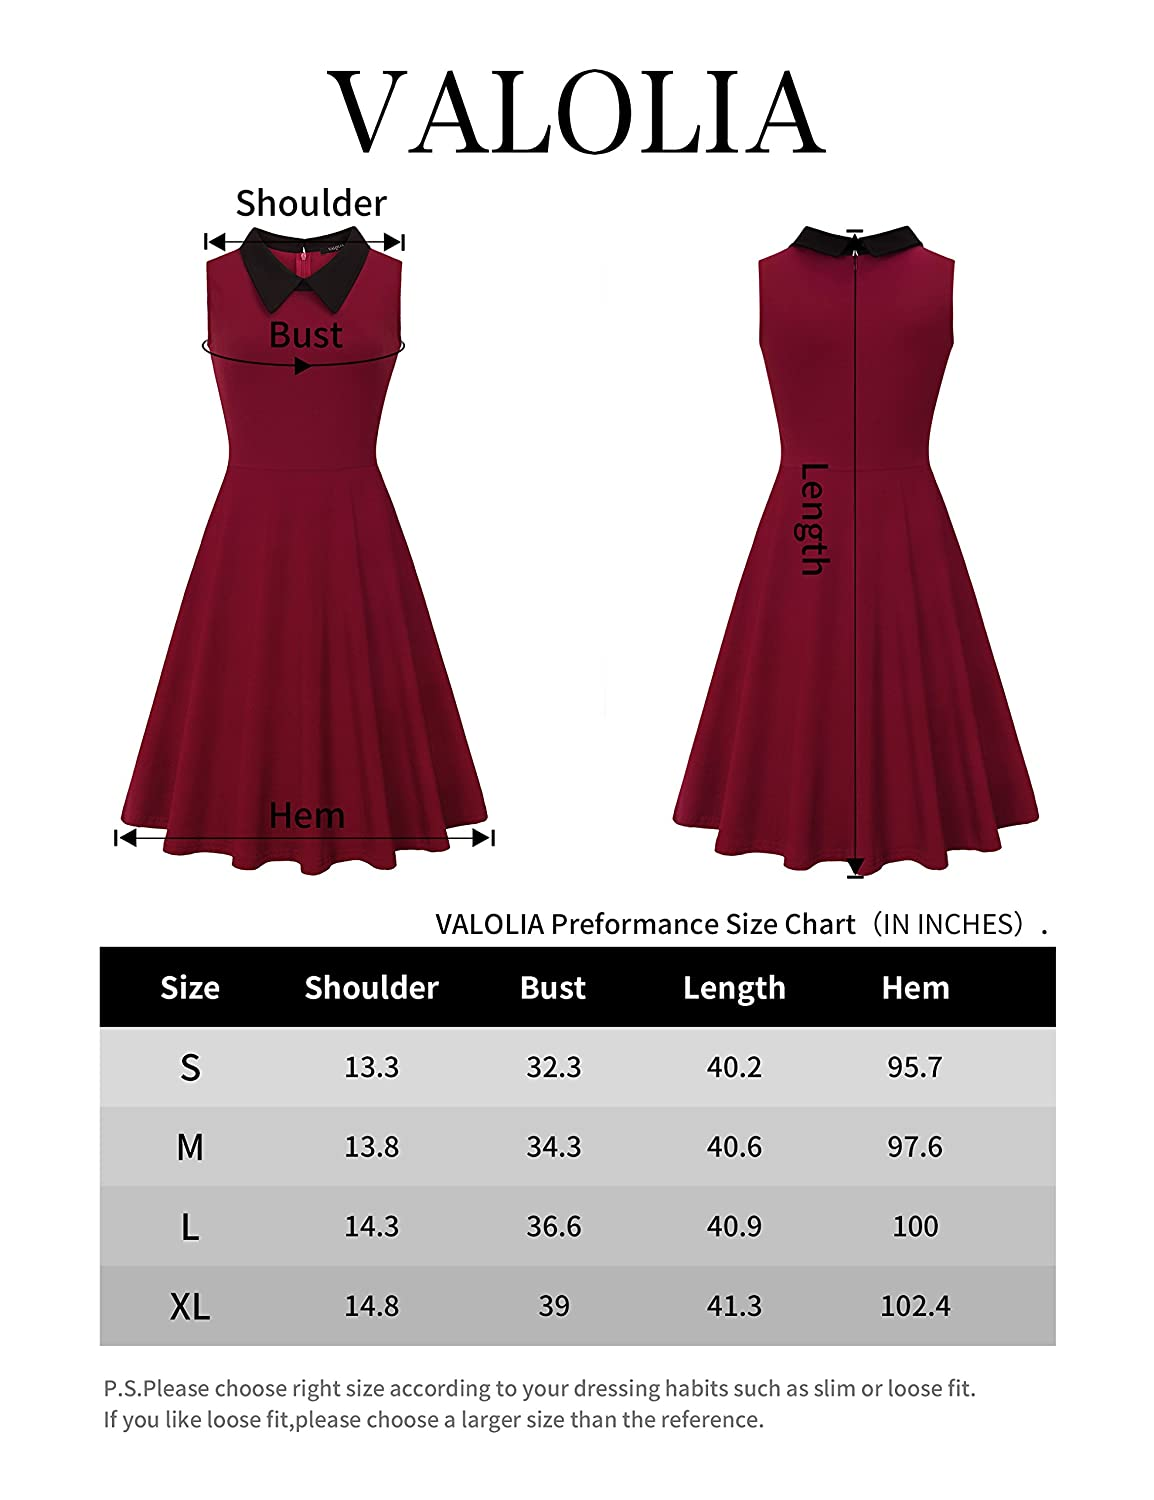 VALOLIA Womens Summer Sleeveless Collar Midi Swing Work Casual Dresses for Party Wedding at Amazon Womens Clothing store: